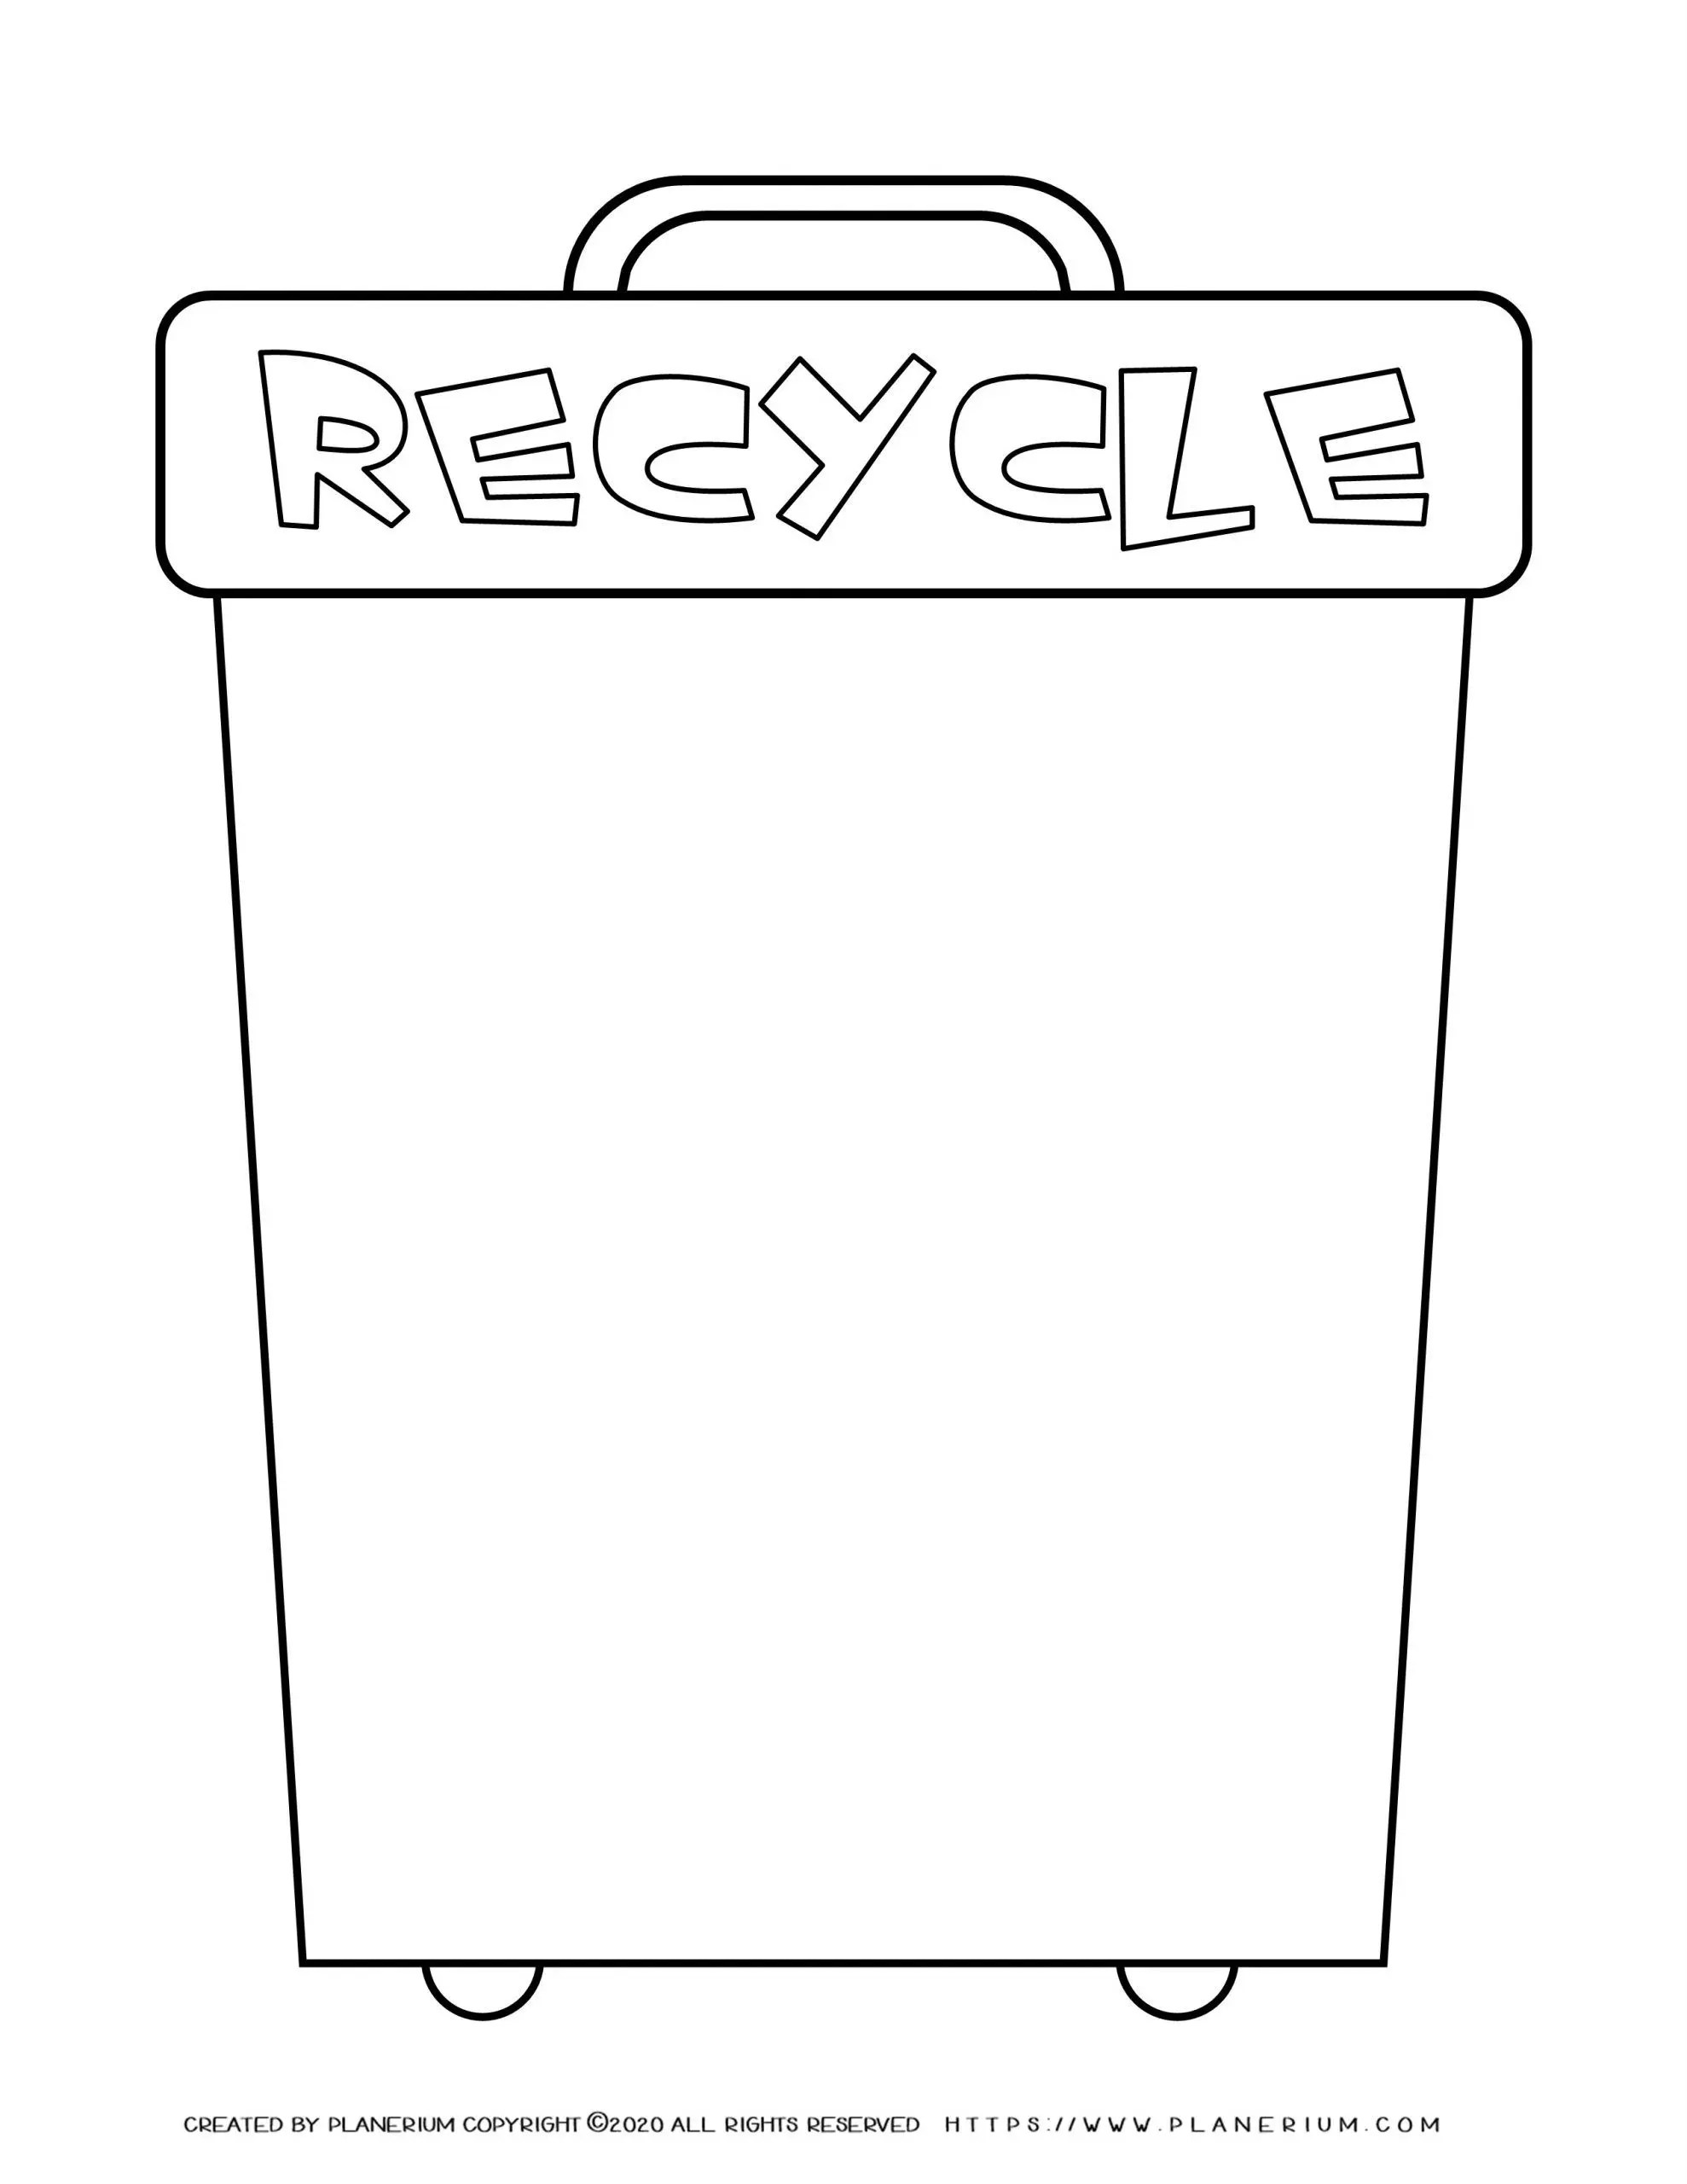 hight resolution of Earth Day - Worksheet - Recycle Bin   Planerium